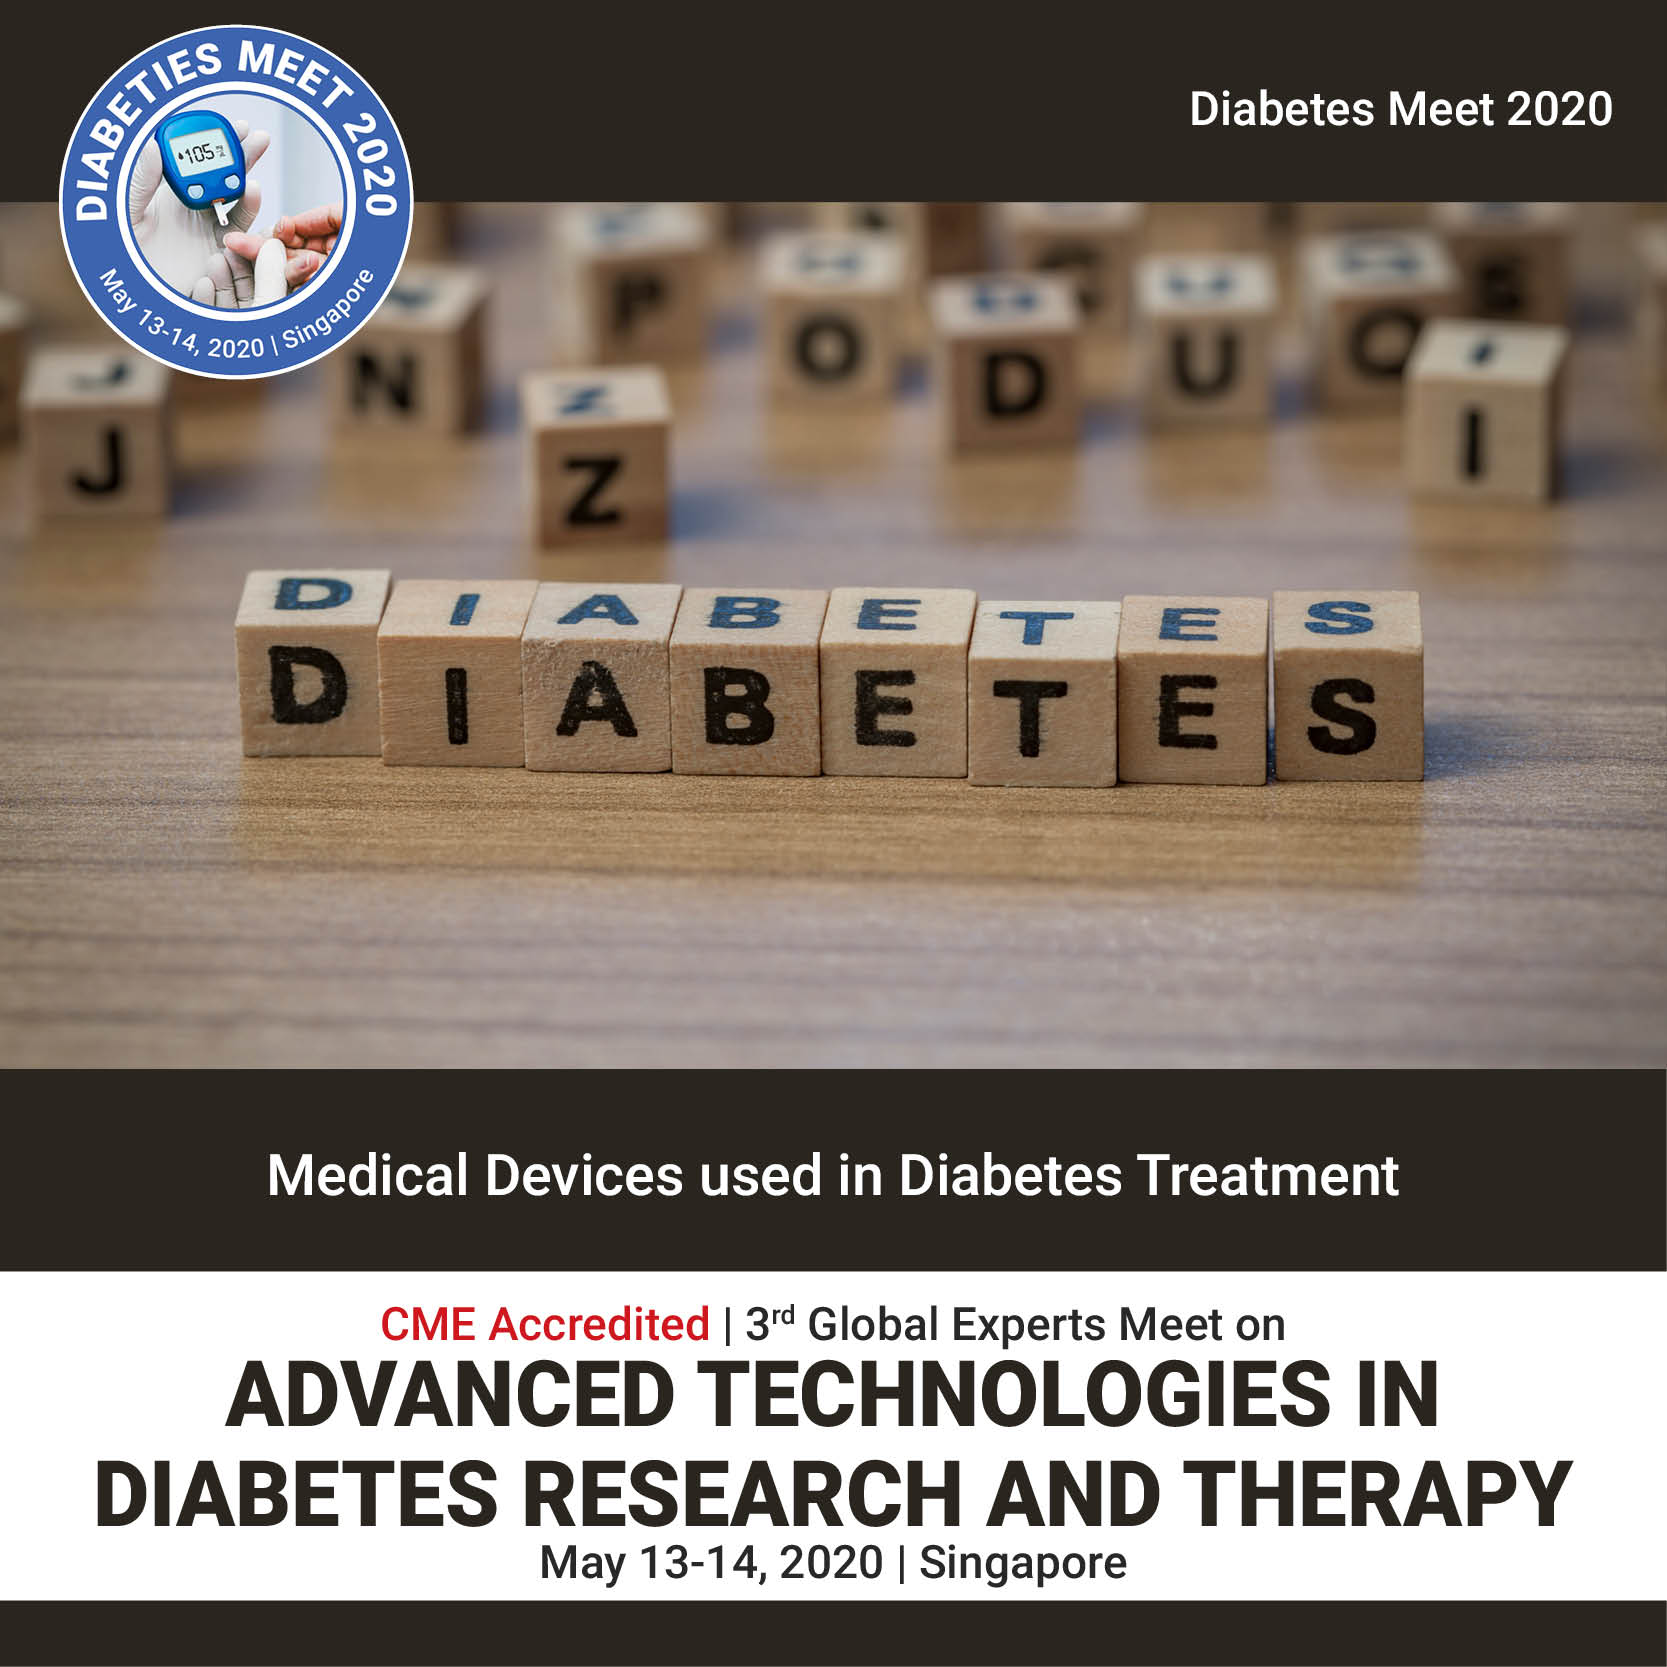 Medical Devices used in Diabetes Treatment Photo